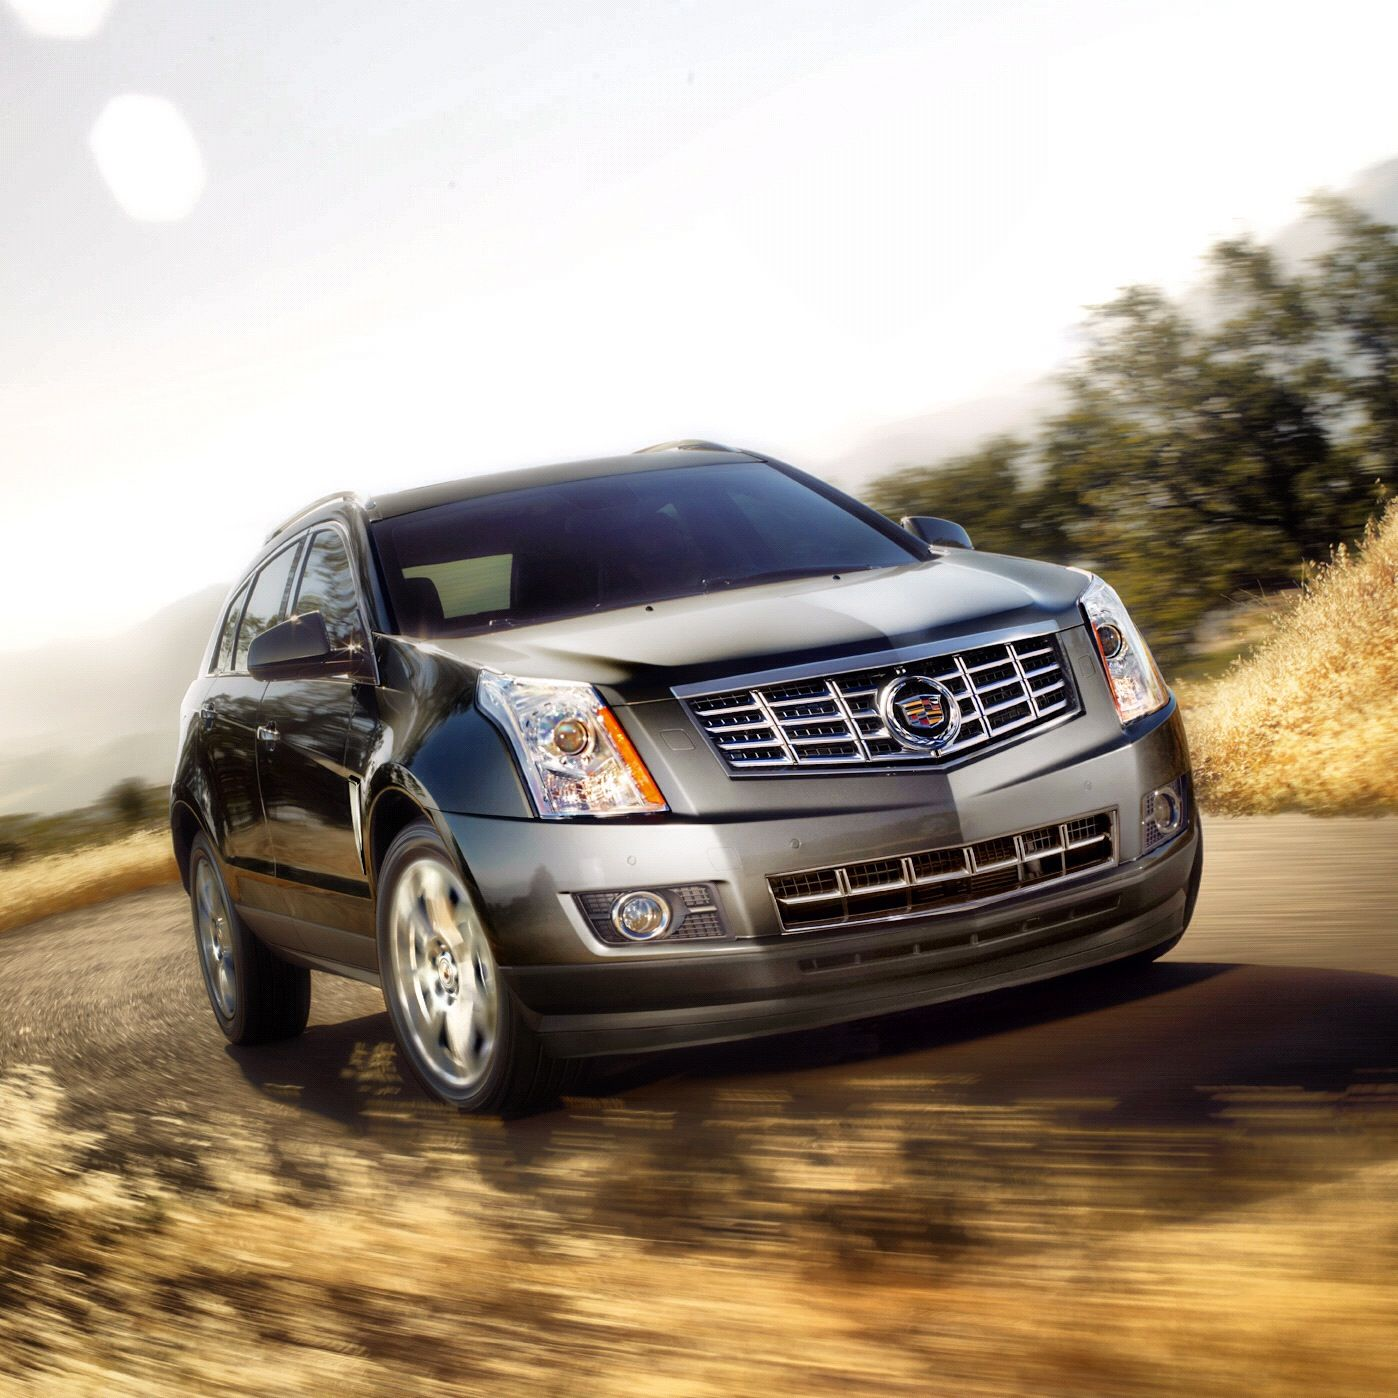 Cadillac Srx: Repin With Your Answer: When It Comes To The #Cadillac